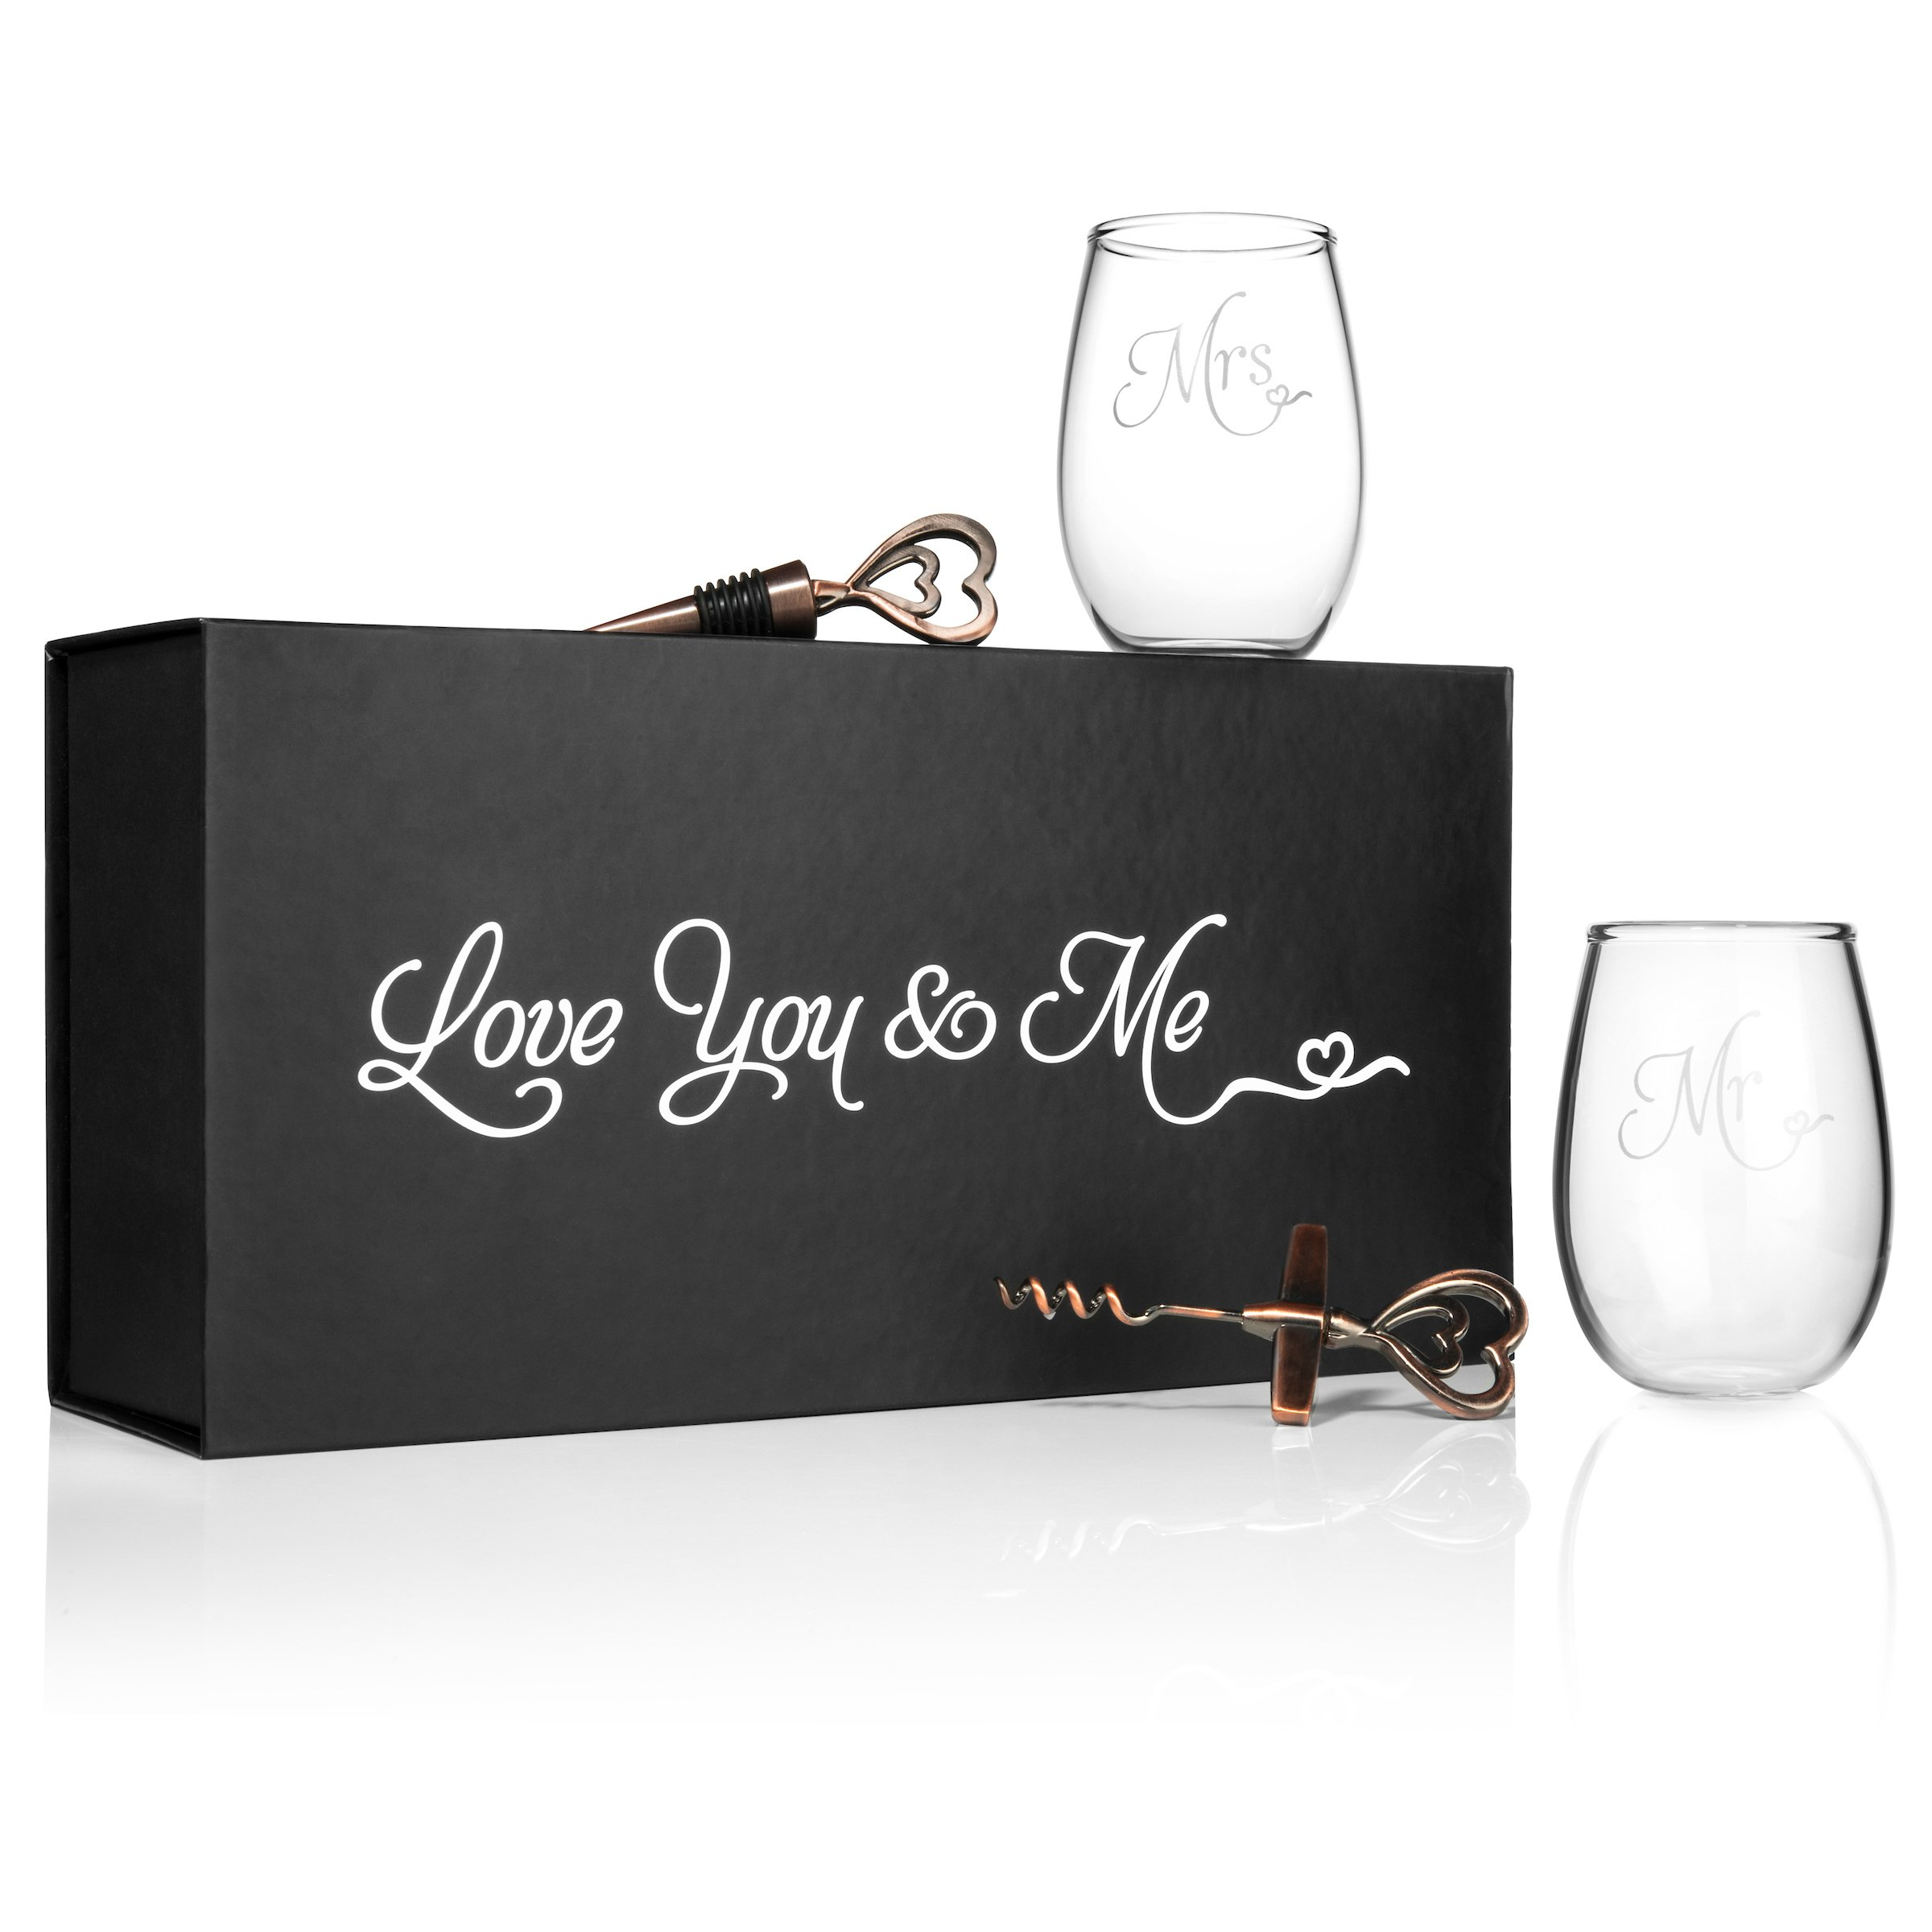 Mr. and Mrs. Wine Glass Set with Wine Bottle Opener and Stopper by Love You & Me (Image #1)